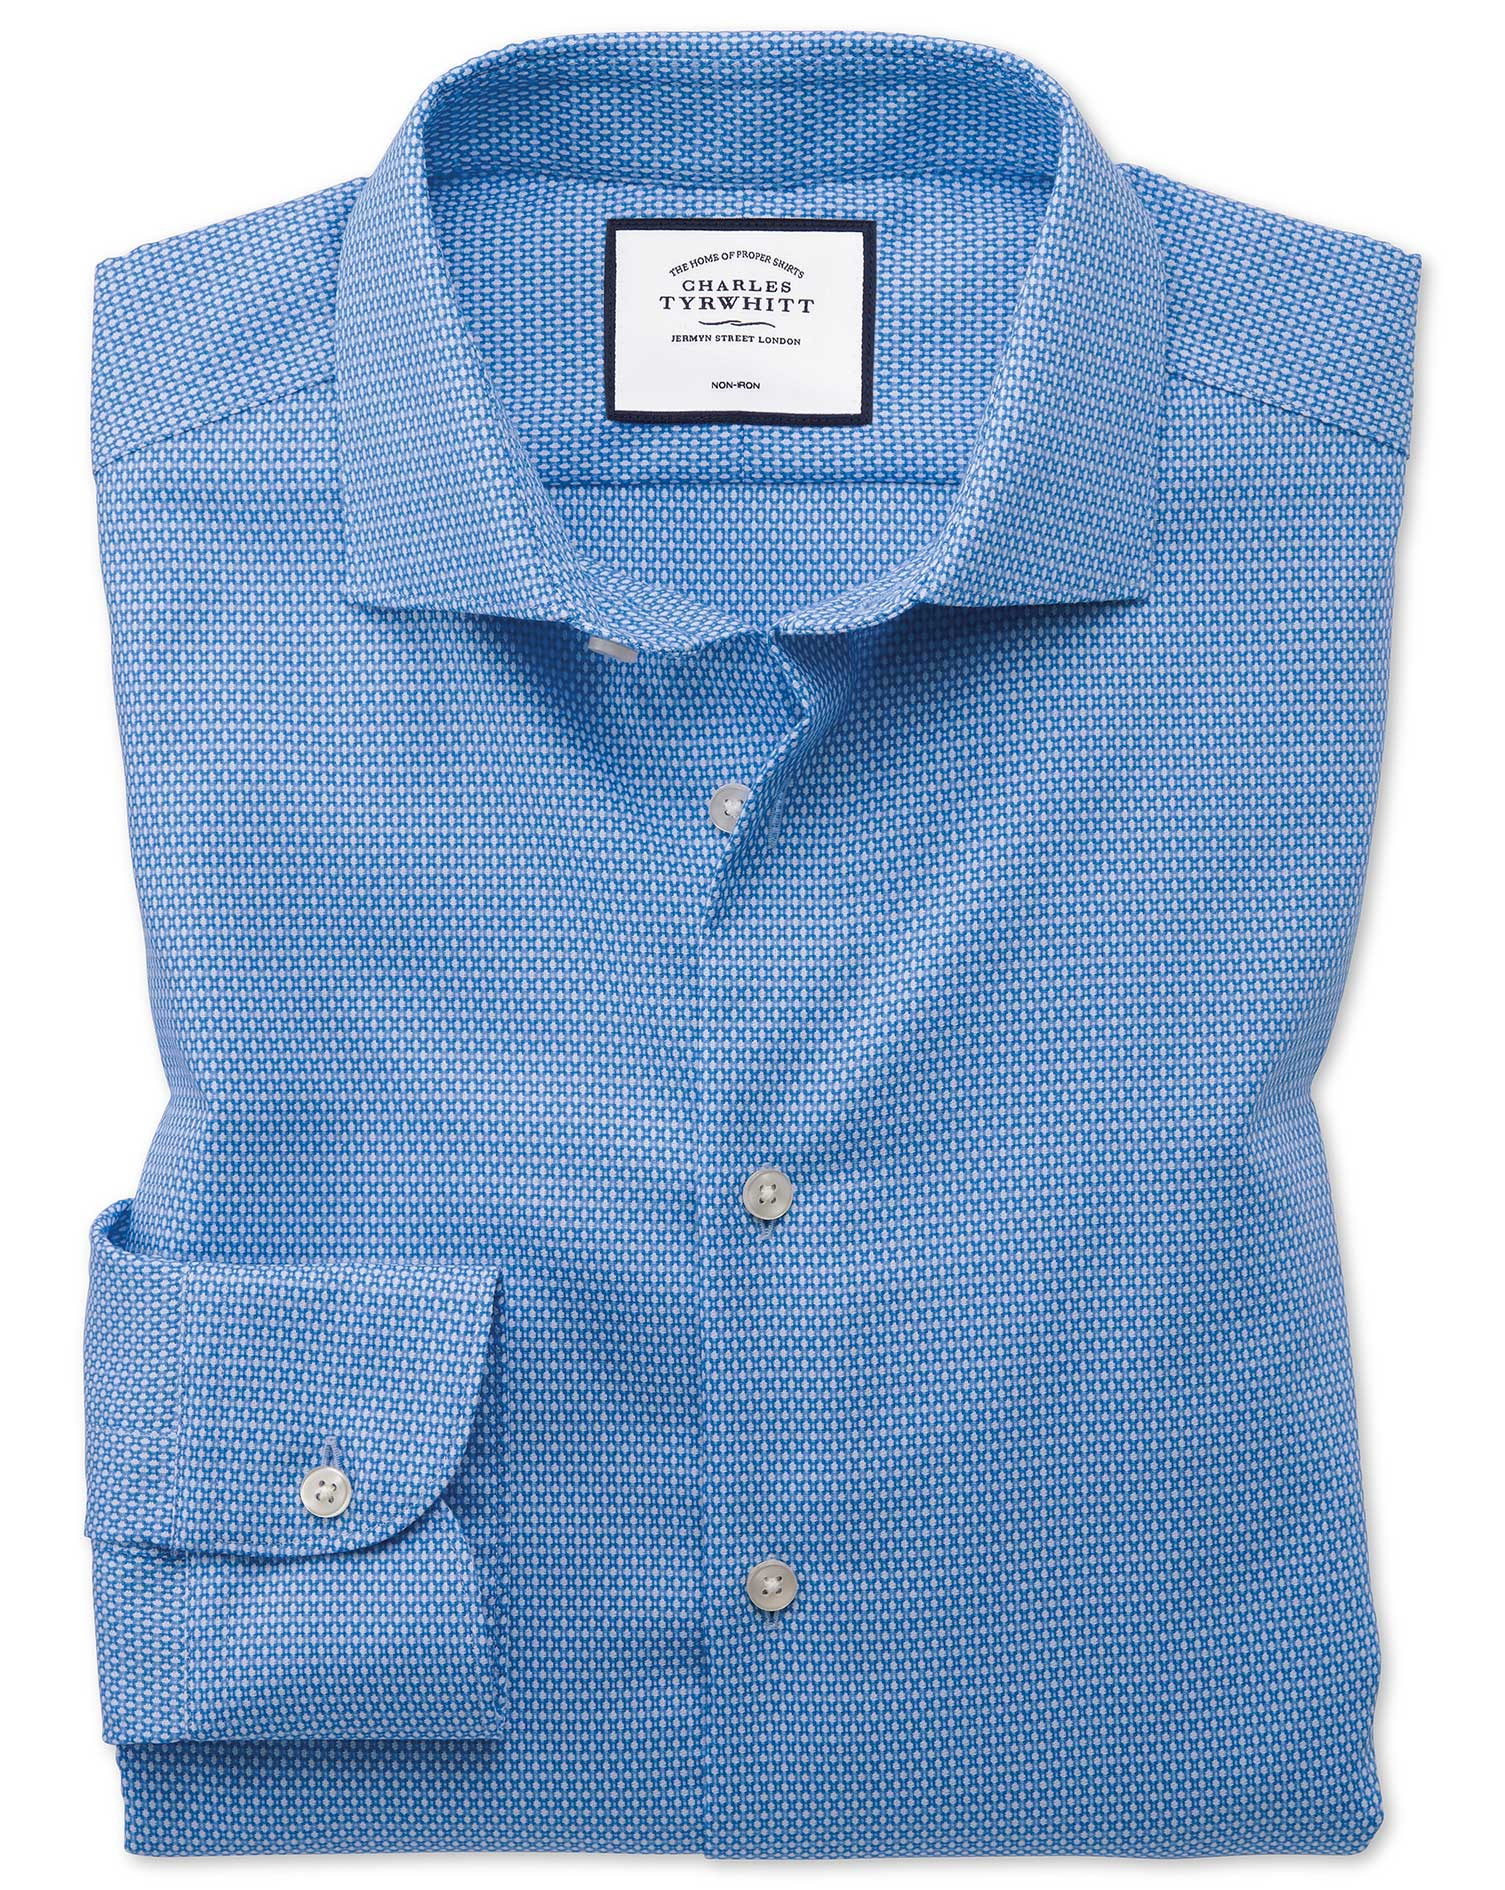 Slim Fit Business Casual Non-Iron Modern Textures Sky Blue Cotton Formal Shirt Single Cuff Size 16/3